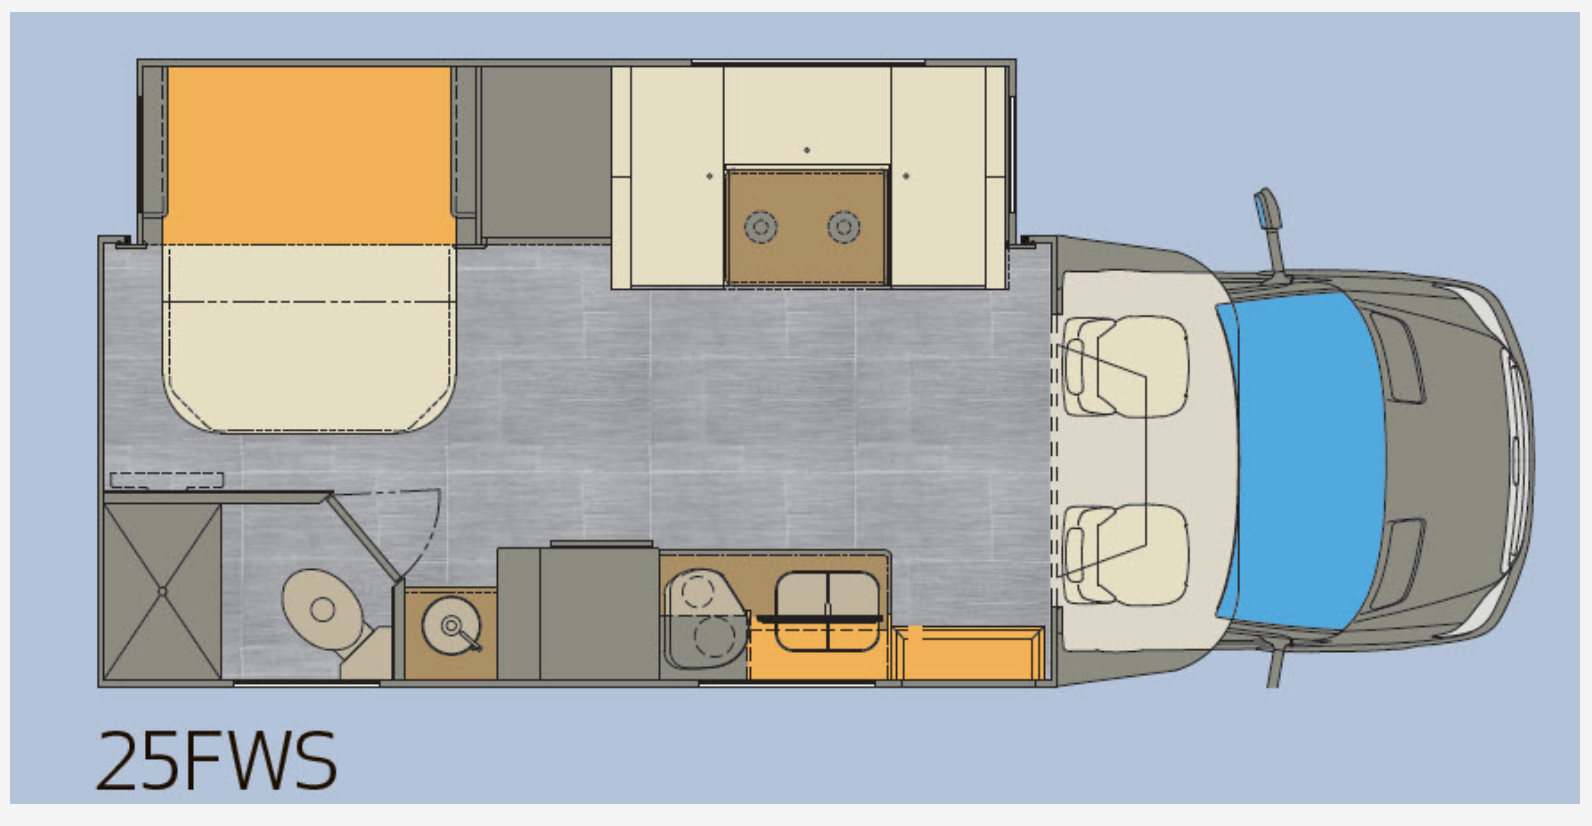 Floor plan for the family-friendly Renegade Villagio 25FWS Class B+